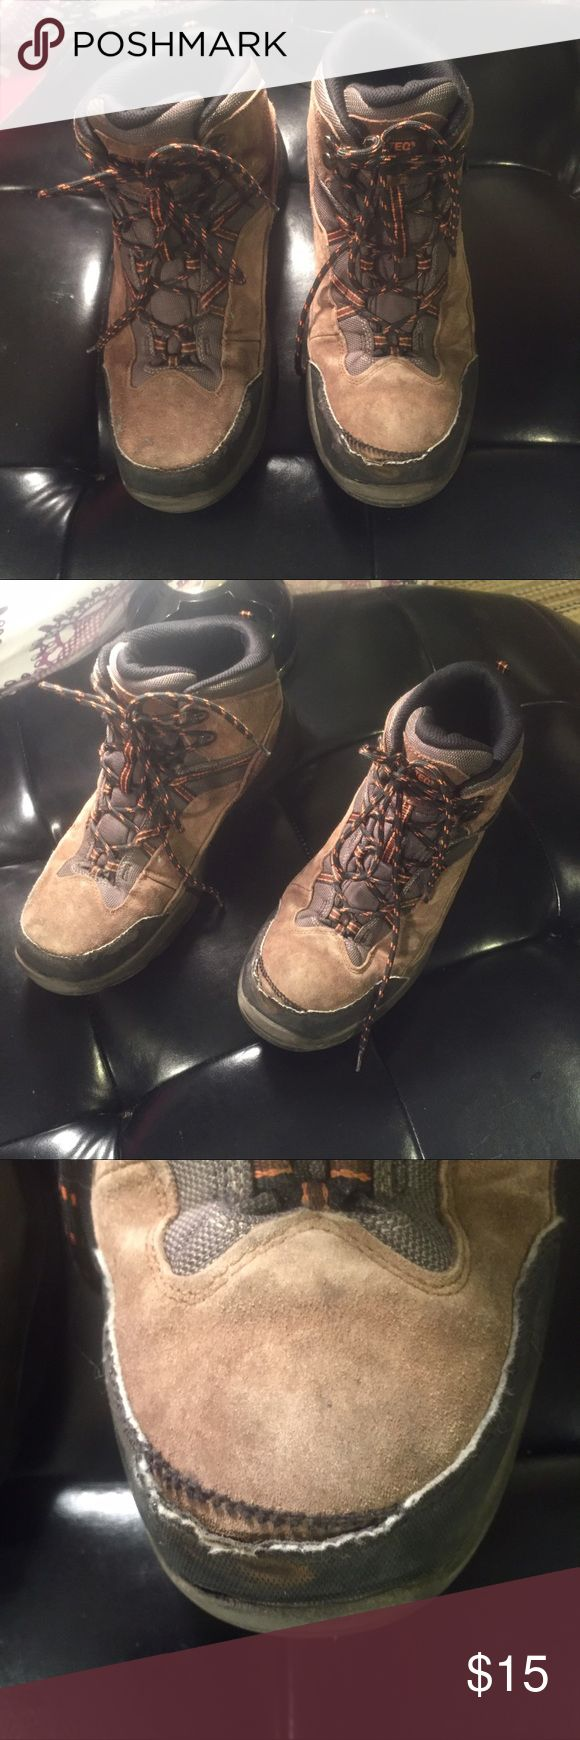 MENS HI-TEC HIKING BOOTS. Waterproof These boots are in great condition. One inseam of the toe has come apart. Will glue under inseam with heavy duty waterproof . Price reflects use' Hi-Tec Shoes Boots